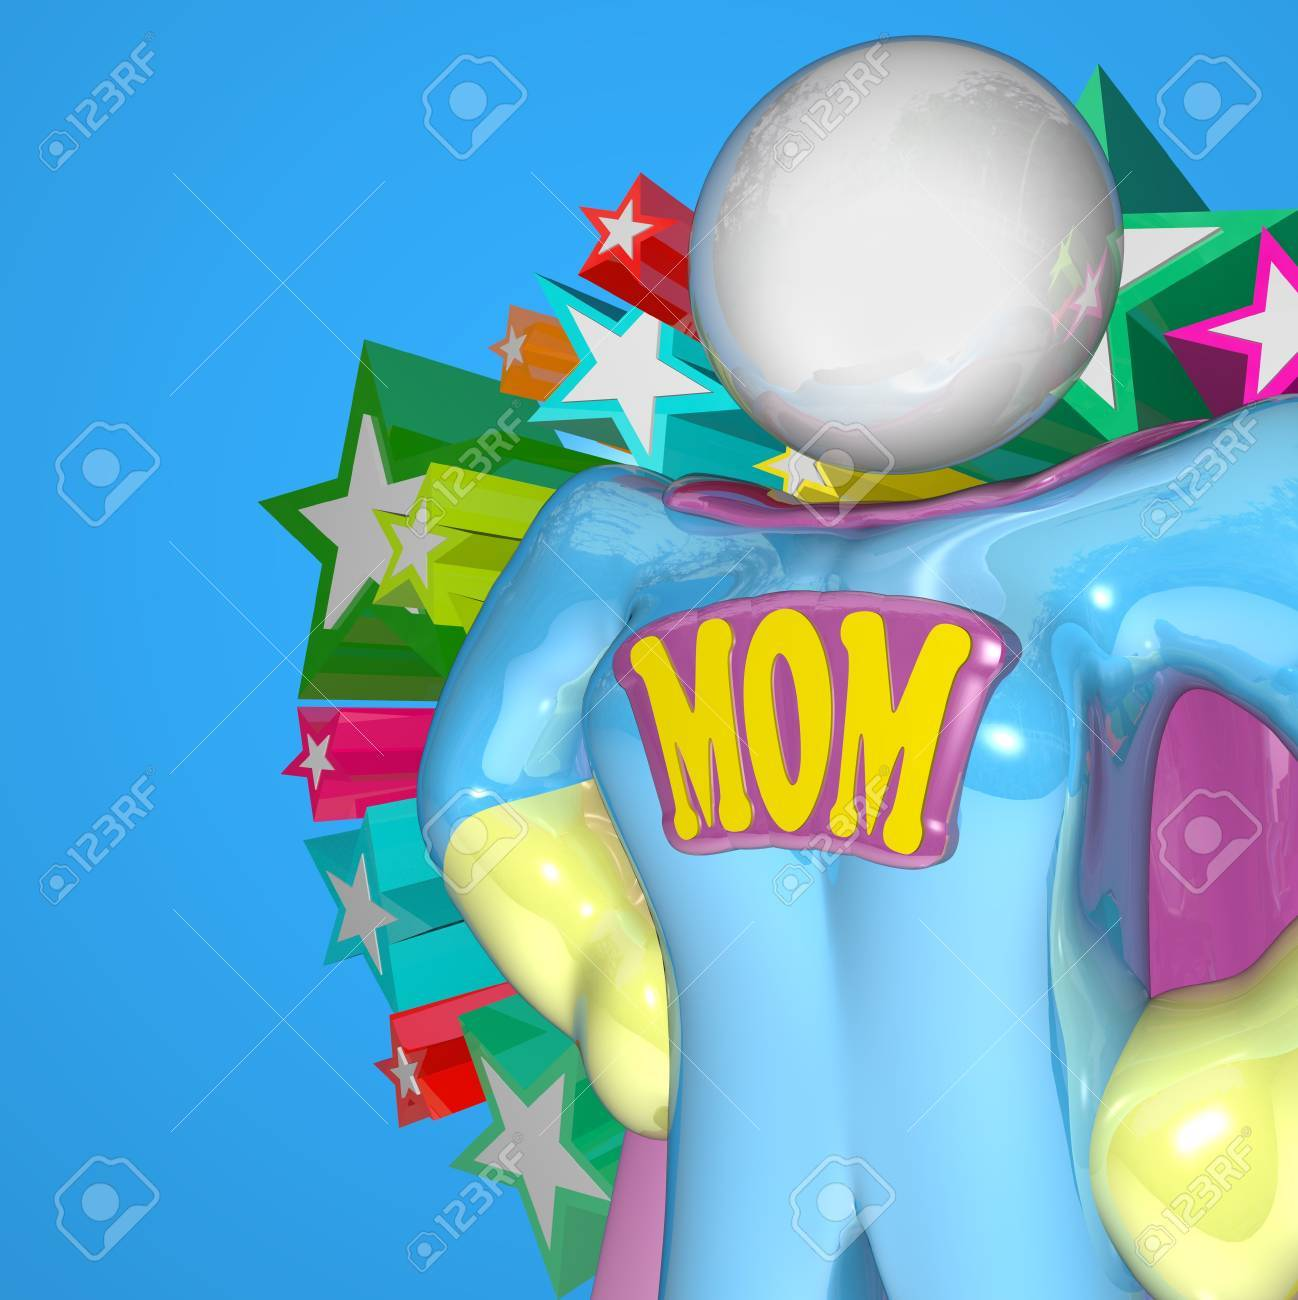 A woman in a Supermom costume stands ready to protect her family and multitask by taking care of the family, the home, and working for the betterment of her loved ones Stock Photo - 10978052